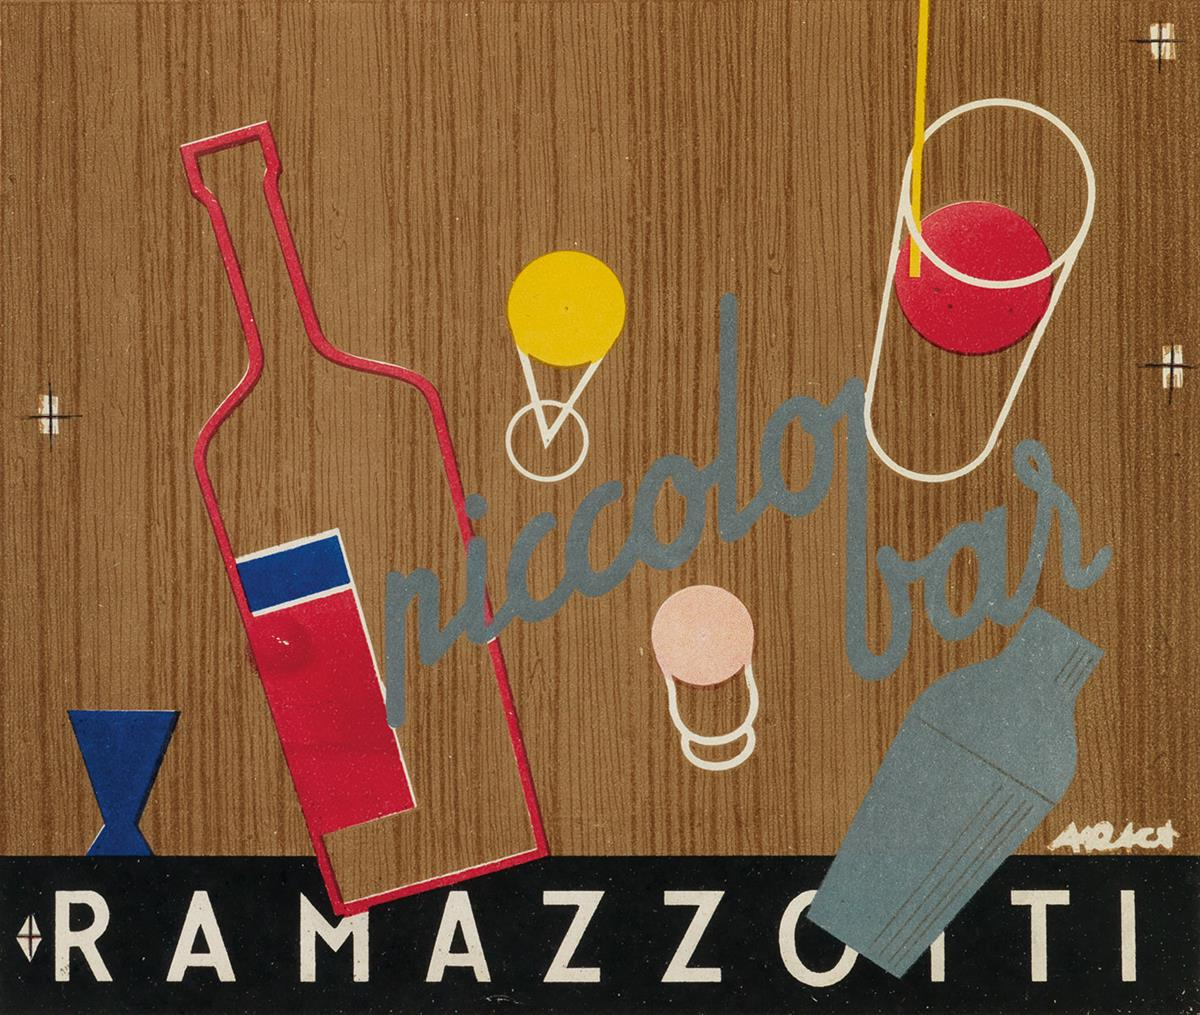 ARACA-(DATES-UNKNOWN)-RAMAZZOTTI-Two-labels-Each-approximate